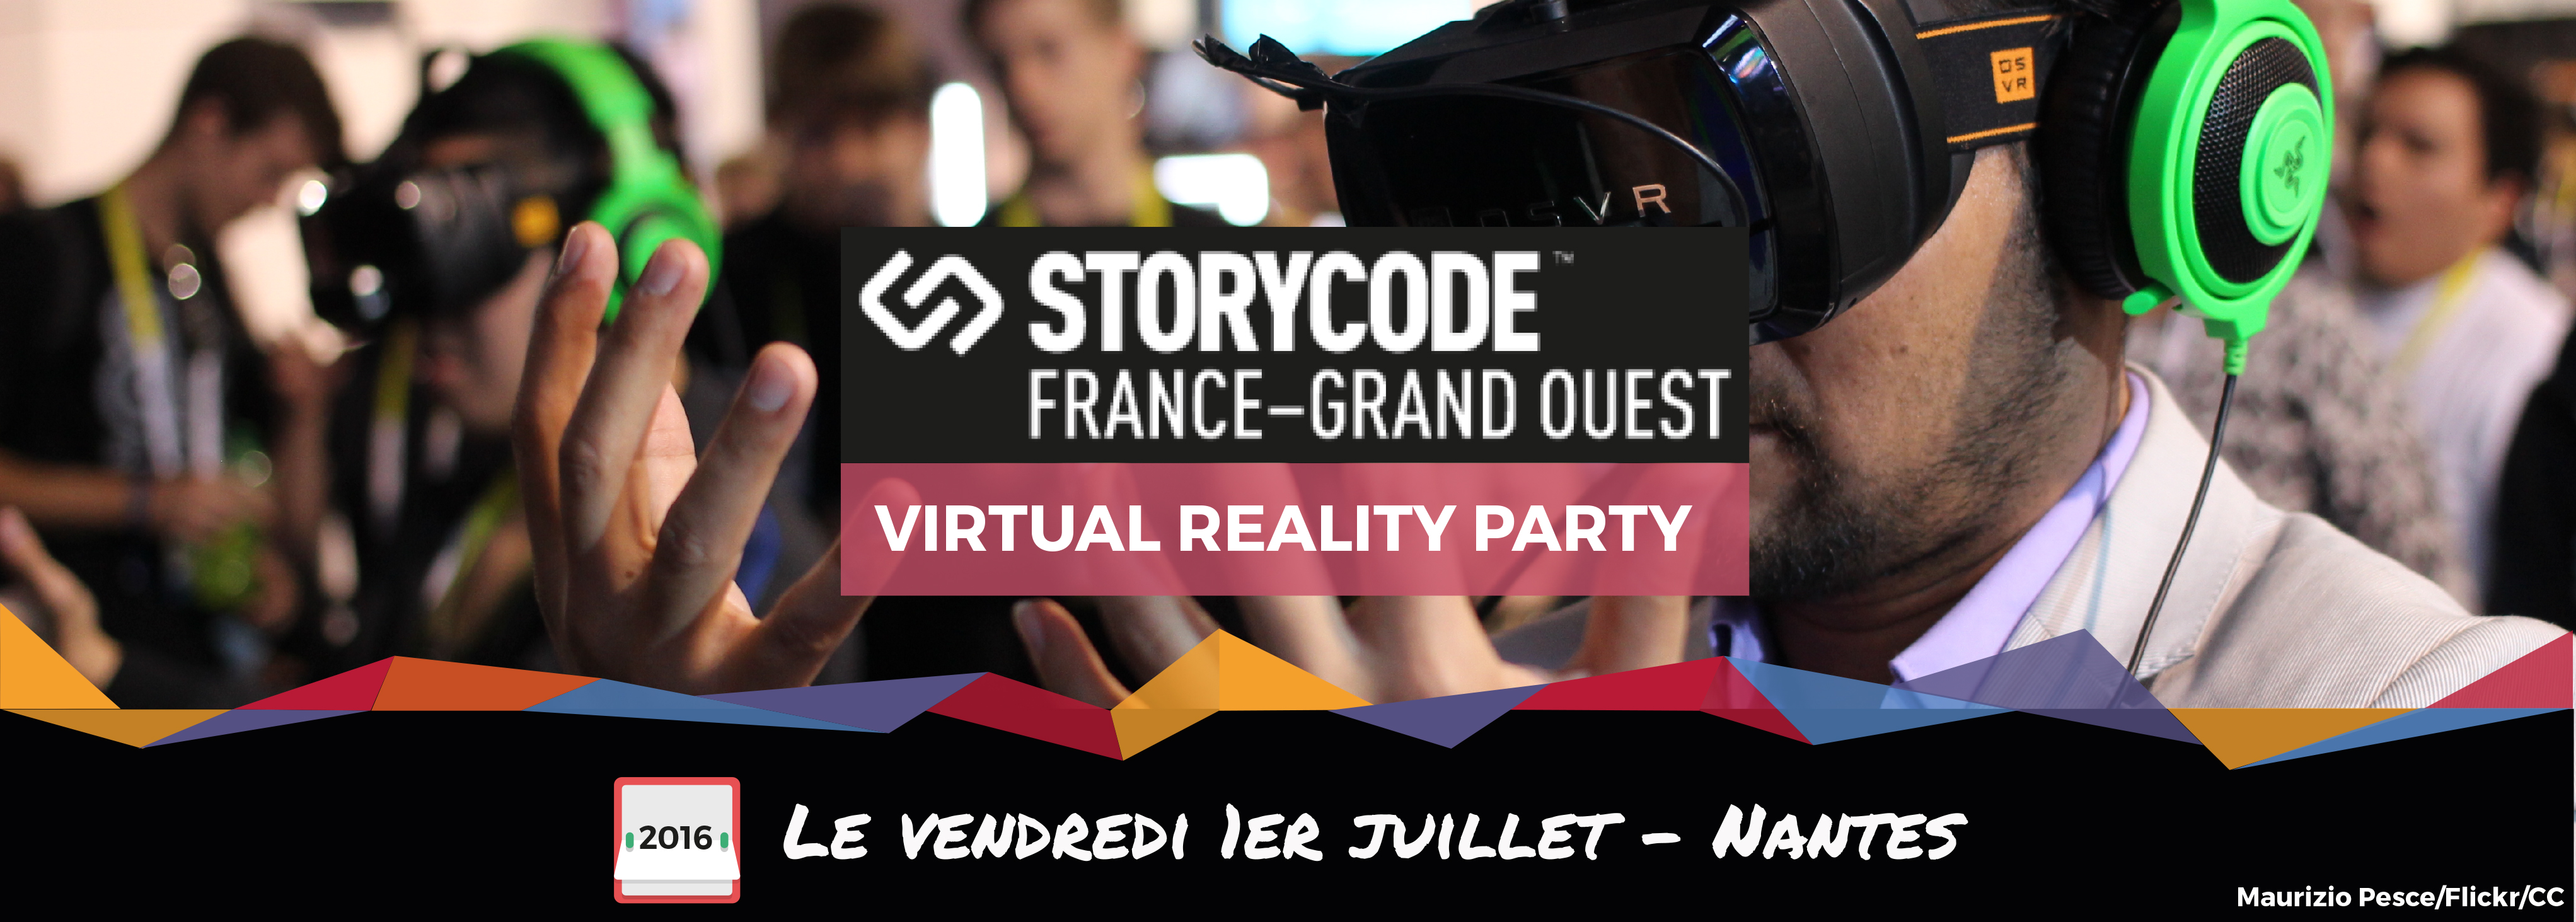 VIRTUAL-REALITY-PARTY